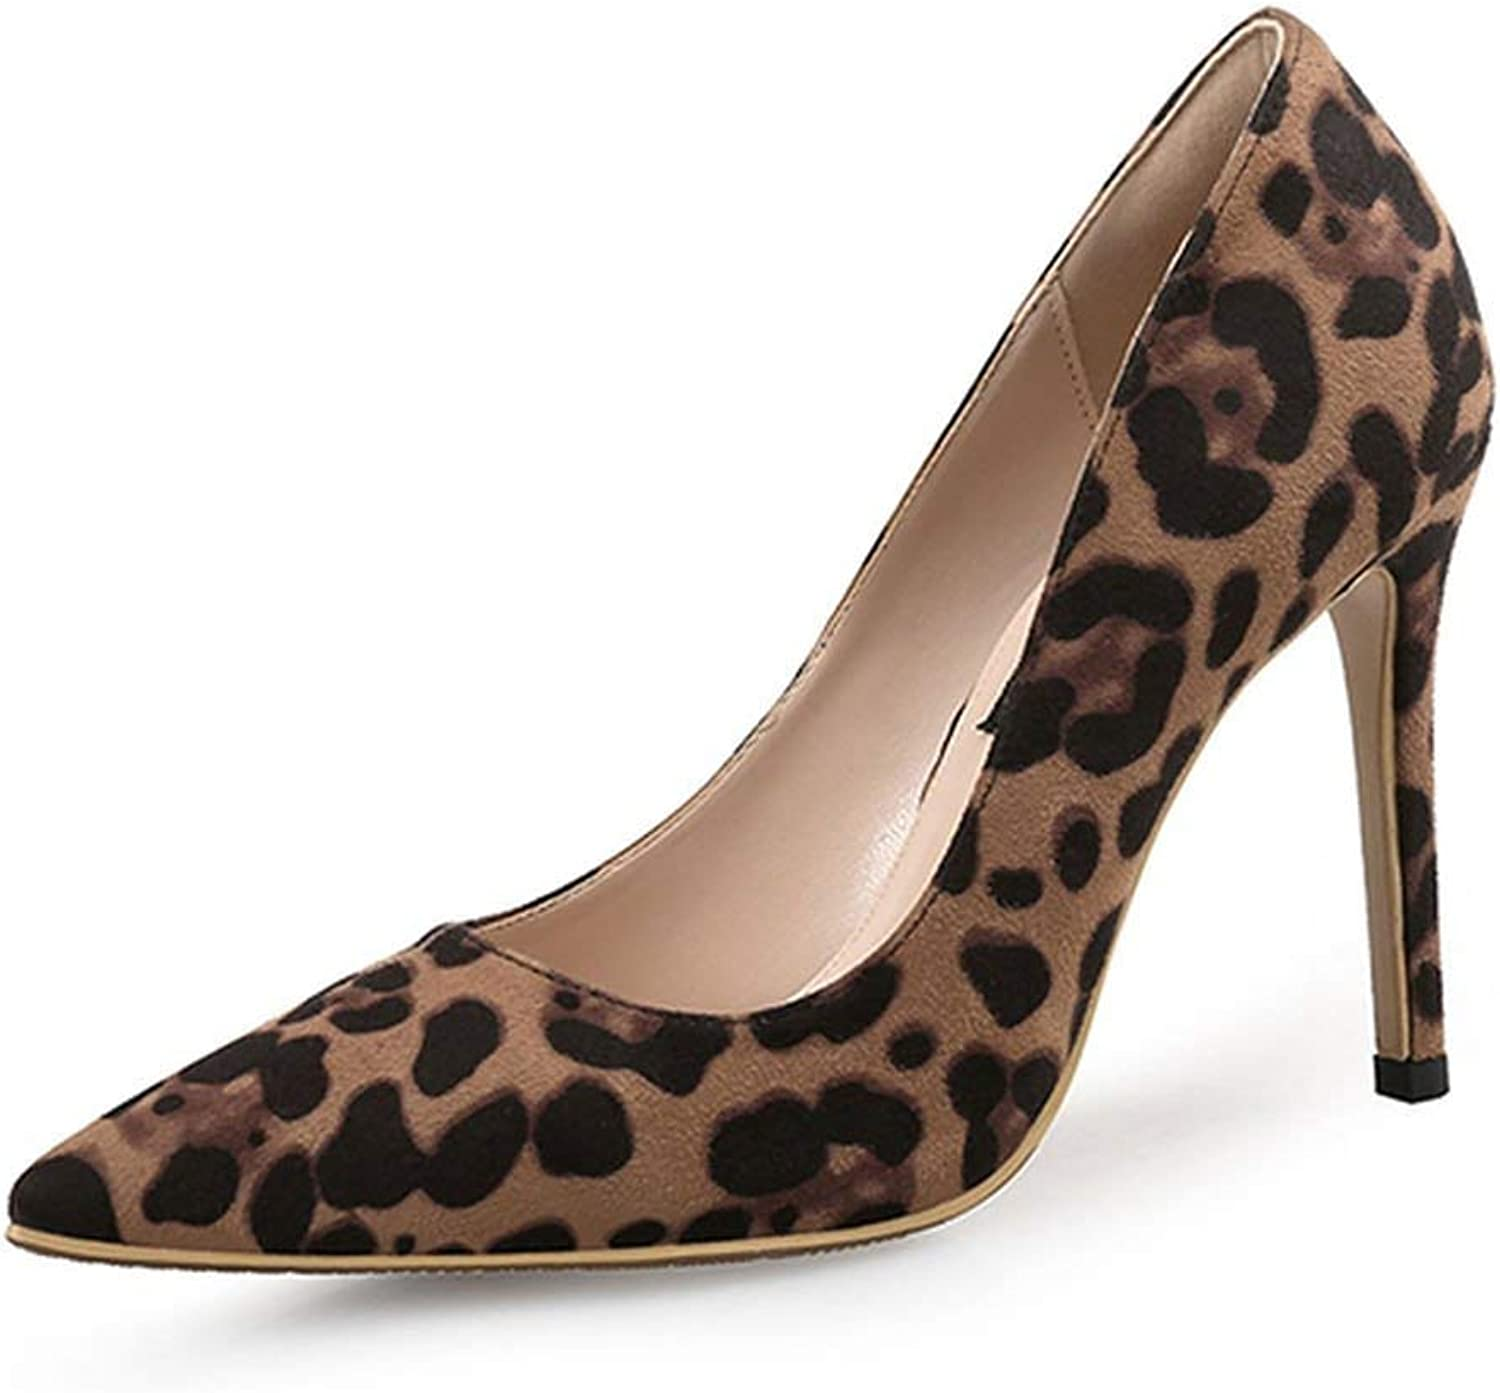 Heeled-Sandalssexy Women Pumps High Heels shoes Spring Leopard Thin Heels Woman Party shoes Plus Size Pointed Toe Single Female Pumps 45,Basic 6Cm,6